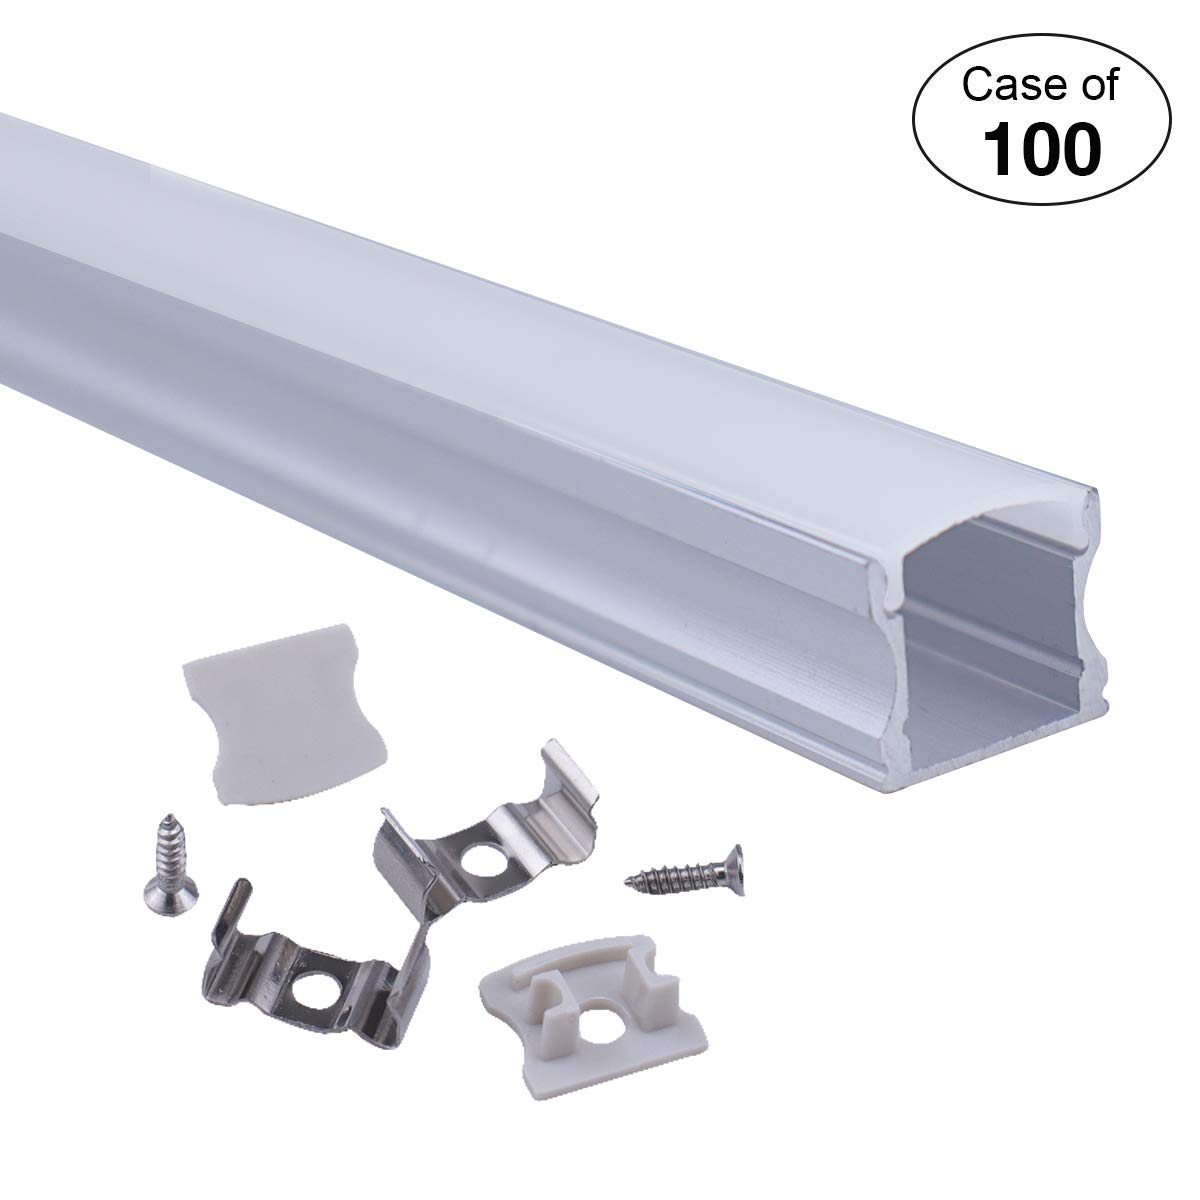 Case of 100, Muzata 3.3ft/1Meter 17x16mm LED Aluminum Channel System with Cover, End Caps and Mounting Clips Aluminum Profile for LED Strip Light, Led Lights Diffuser U101 by Muzata